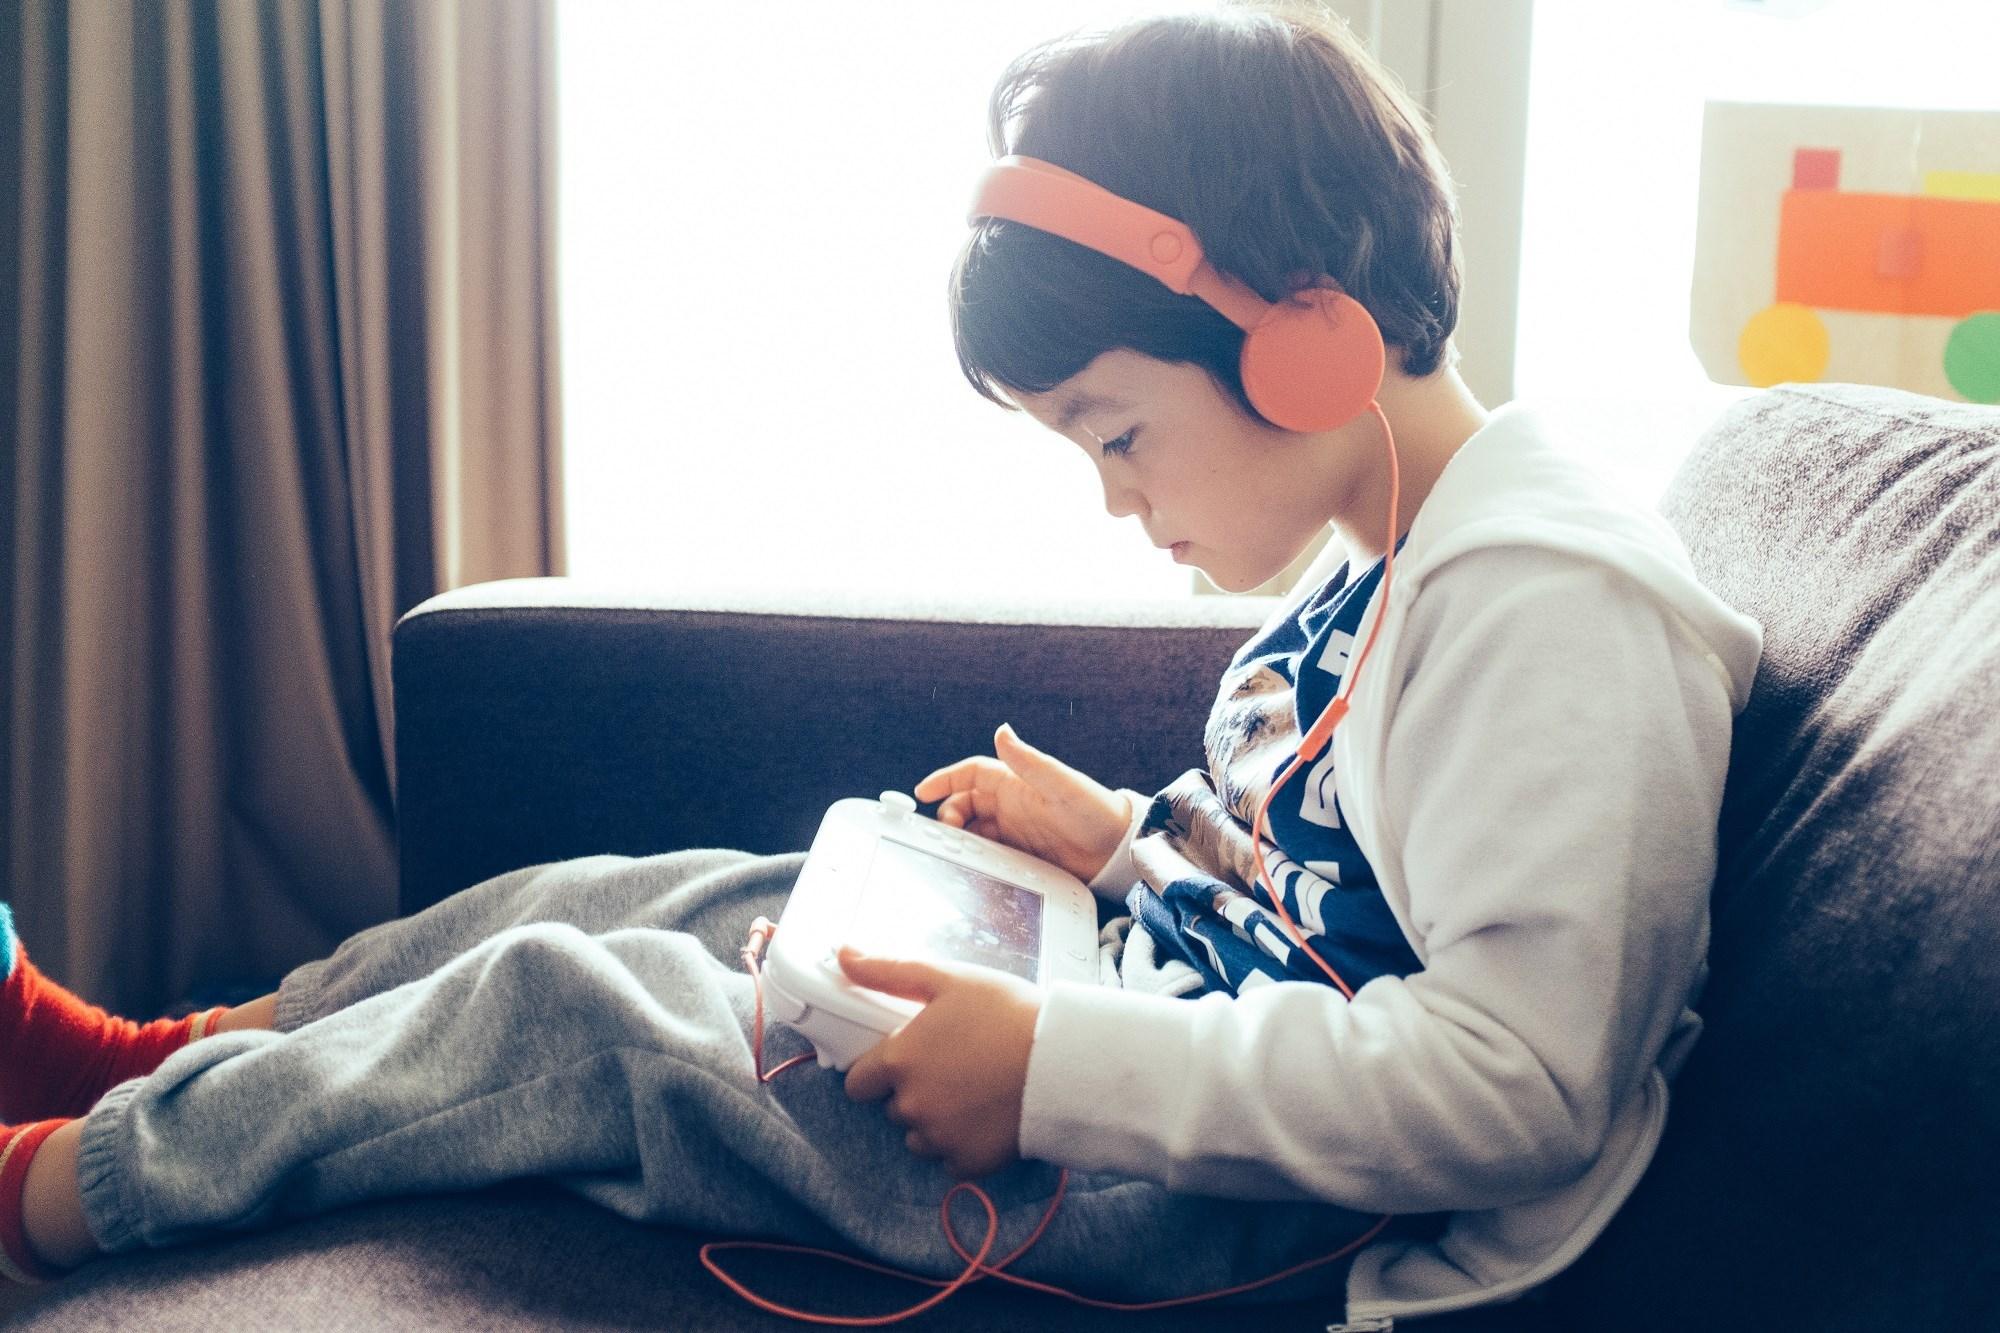 Recreational Screen Time, Sleep Duration Linked to Cognitive Development in Children